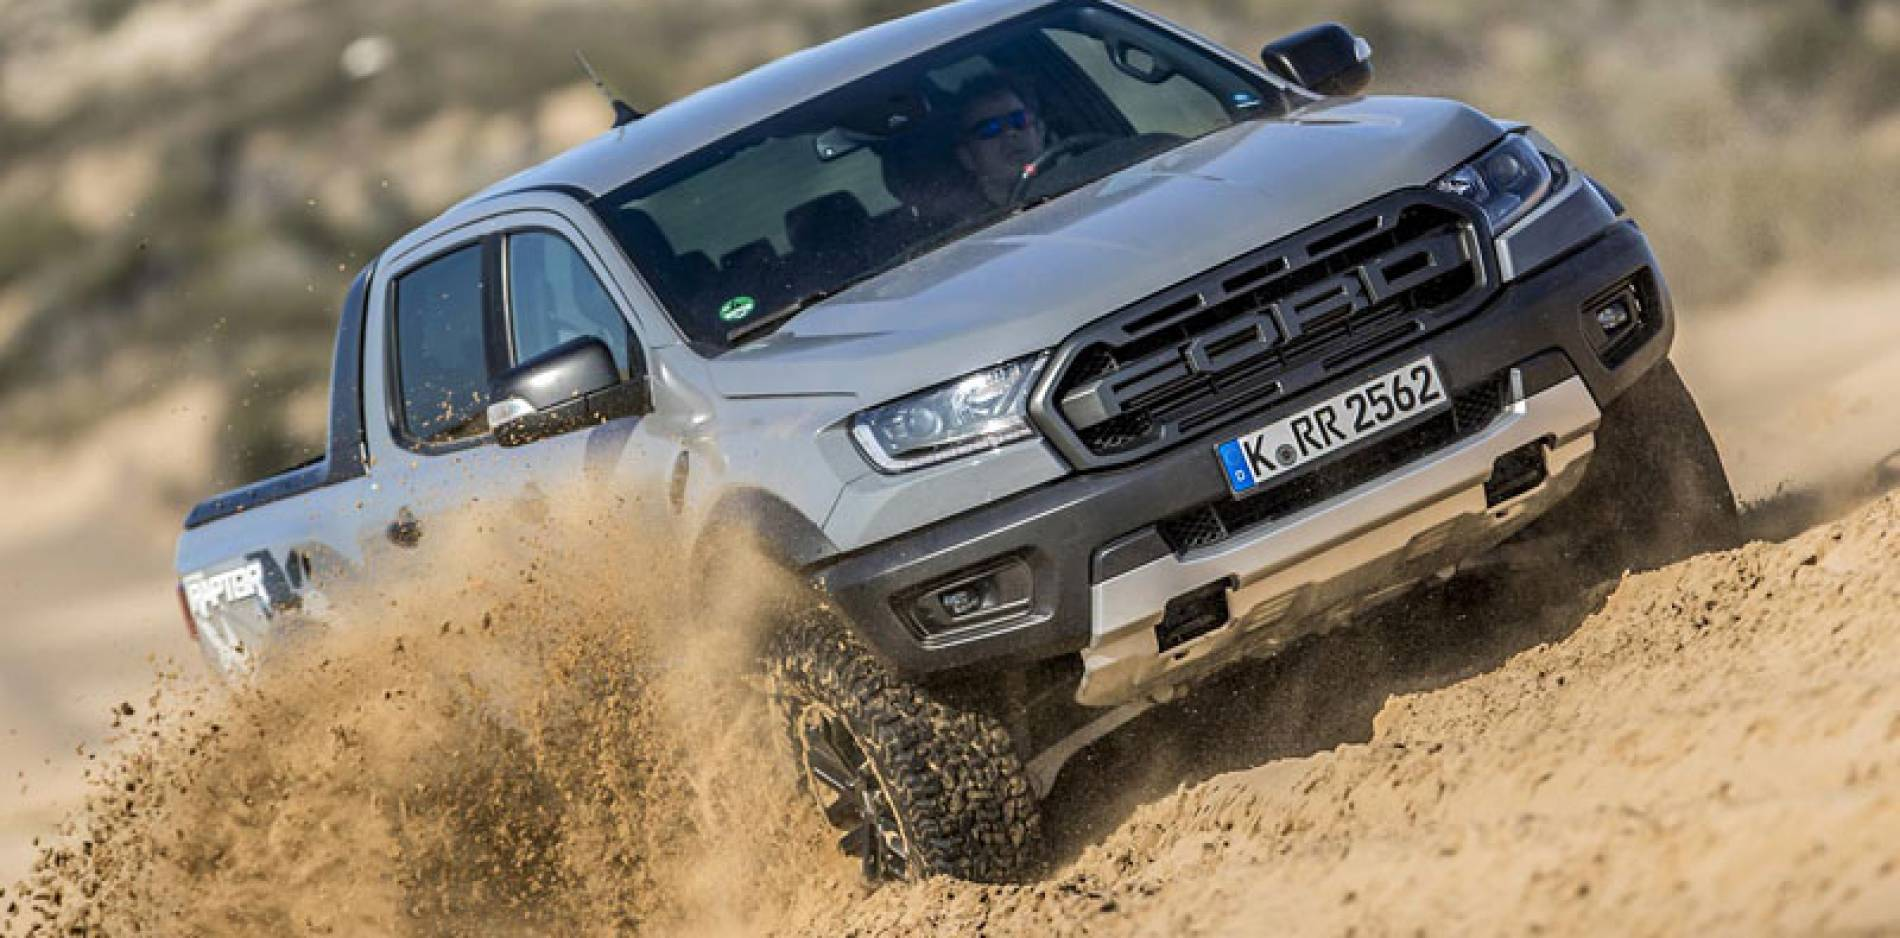 Probamos el Ford Ranger Raptor, el pick-up más radical de Ford